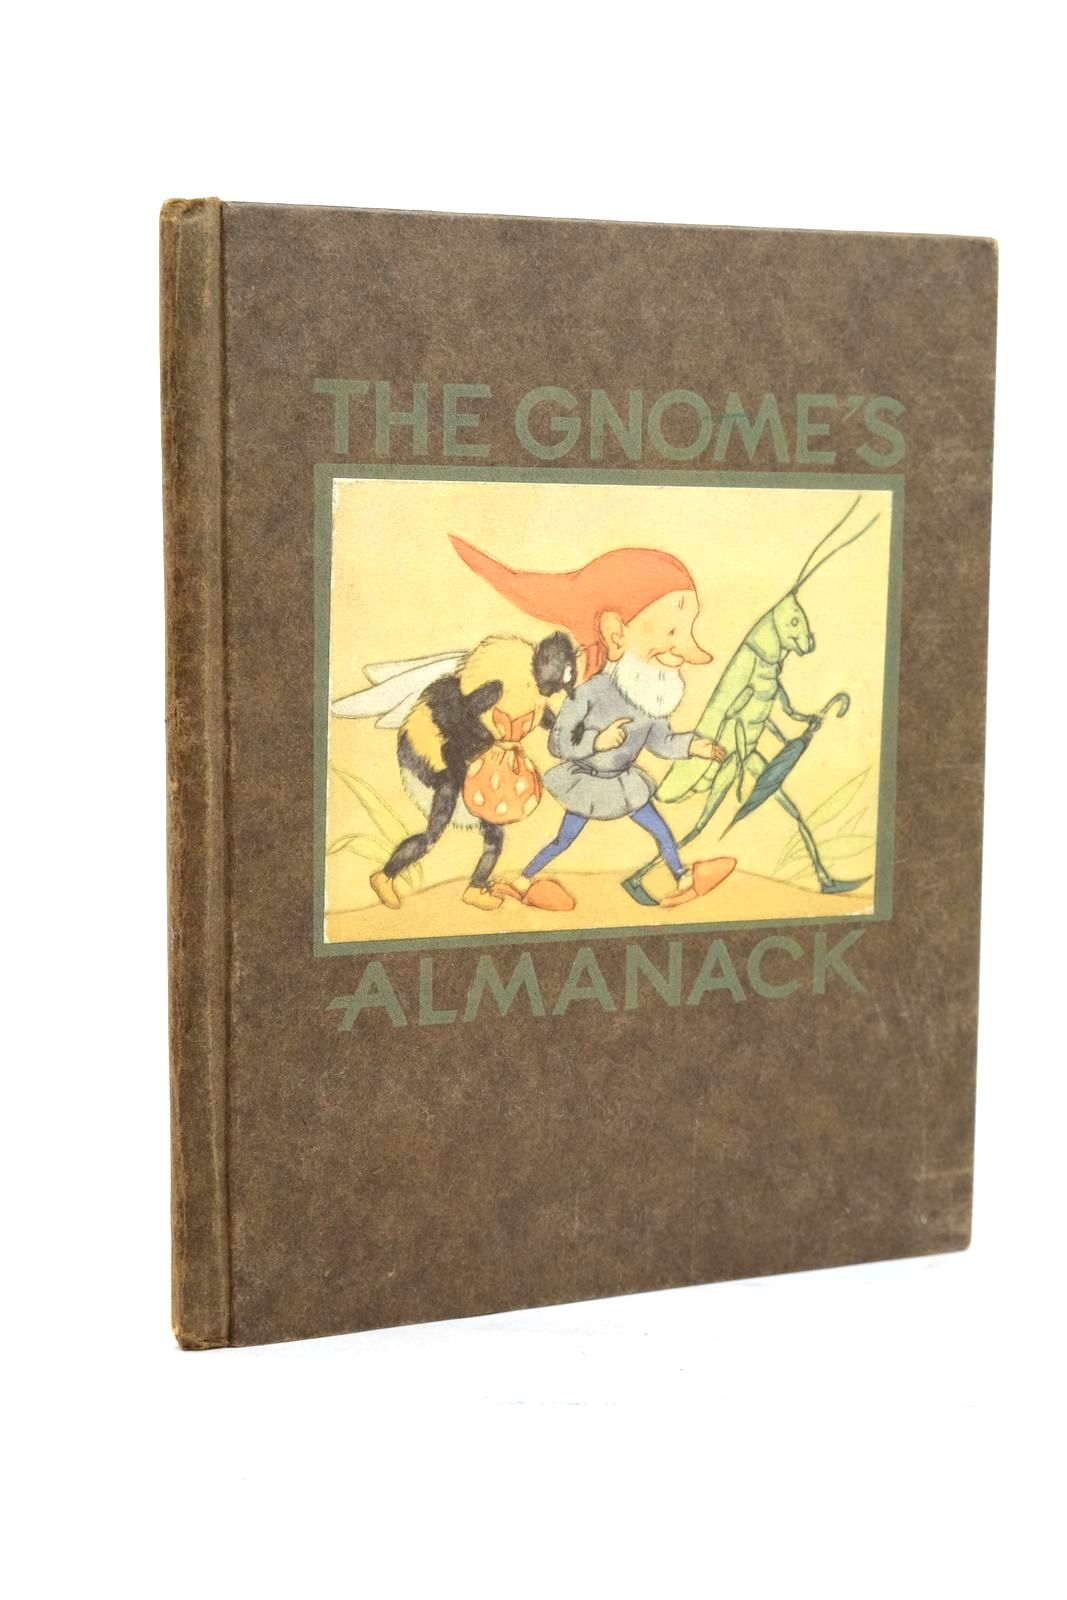 Photo of THE GNOME'S ALMANACK written by Head, June illustrated by Morpurgo, Ida Bohatta published by John Miles Ltd. (STOCK CODE: 1320787)  for sale by Stella & Rose's Books